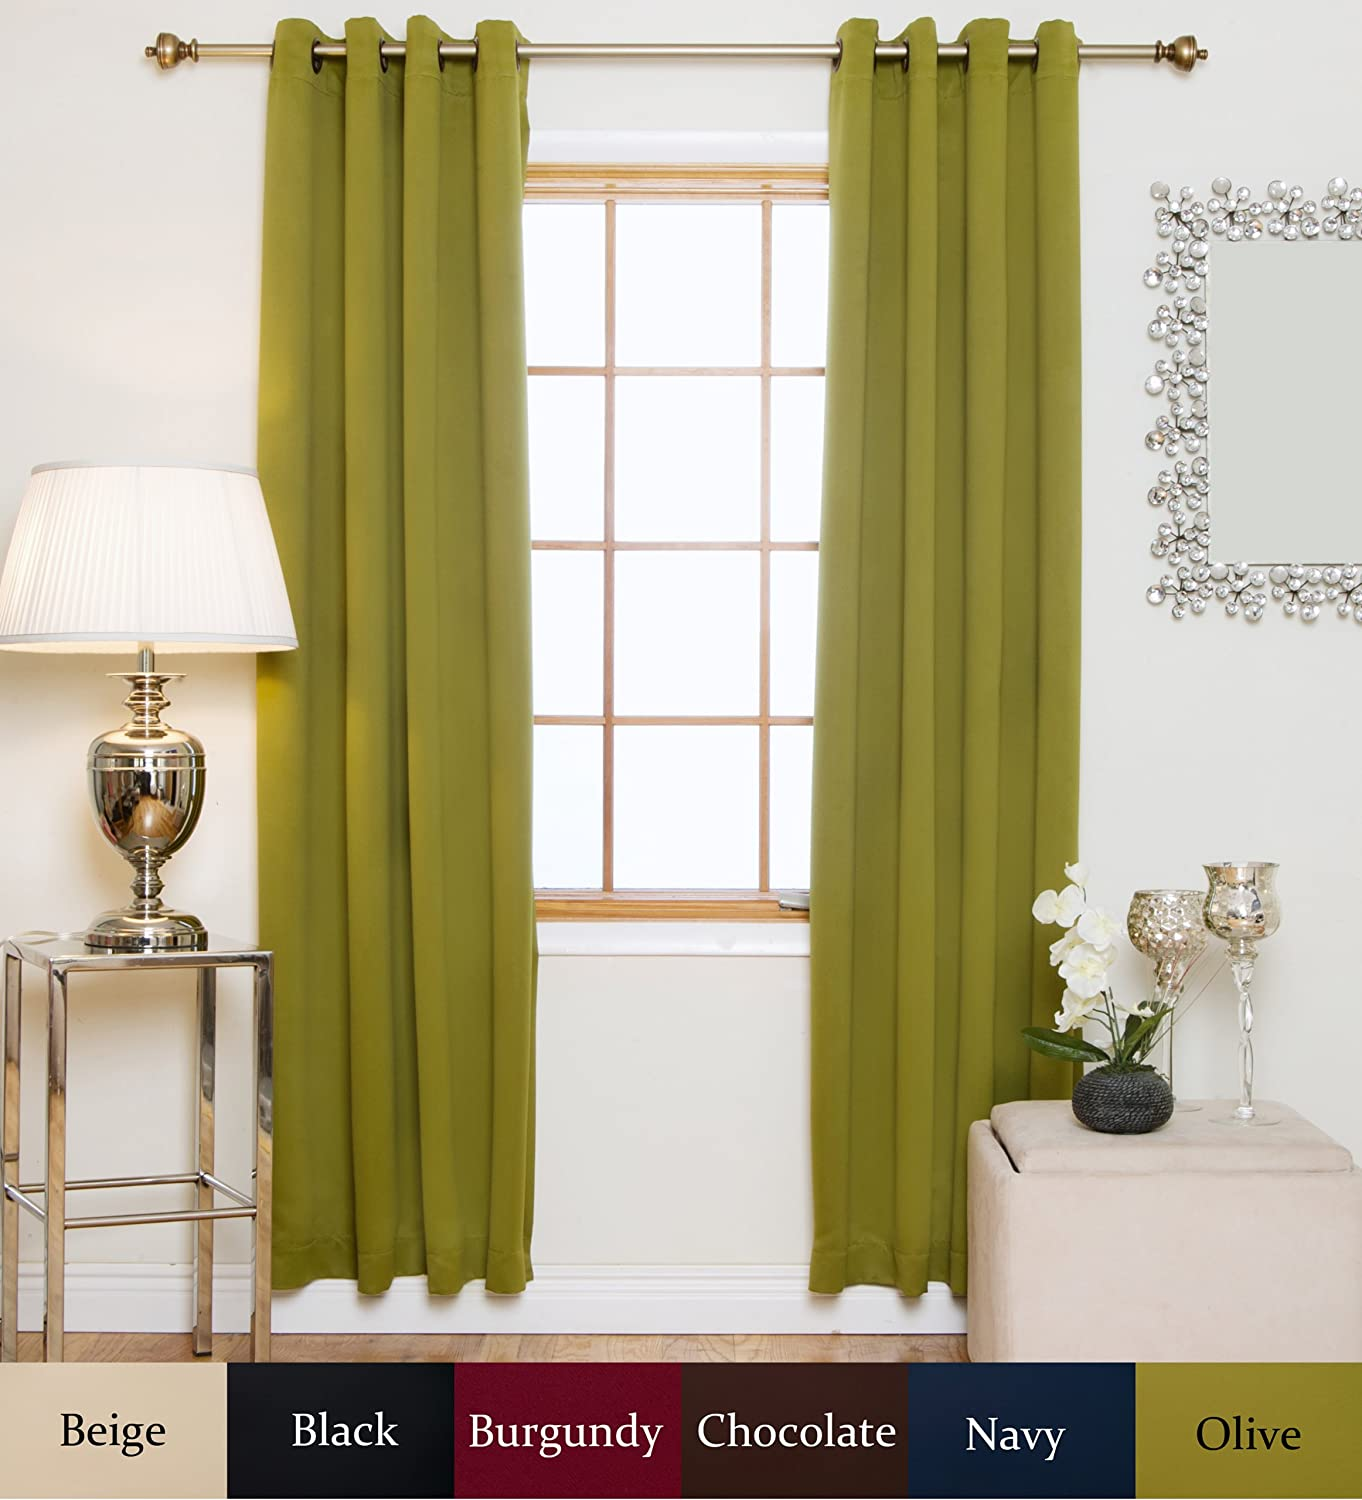 Blackout Curtain Olive Antique Brass Grommet Top Thermal Insulated 96 Inch Length Pair